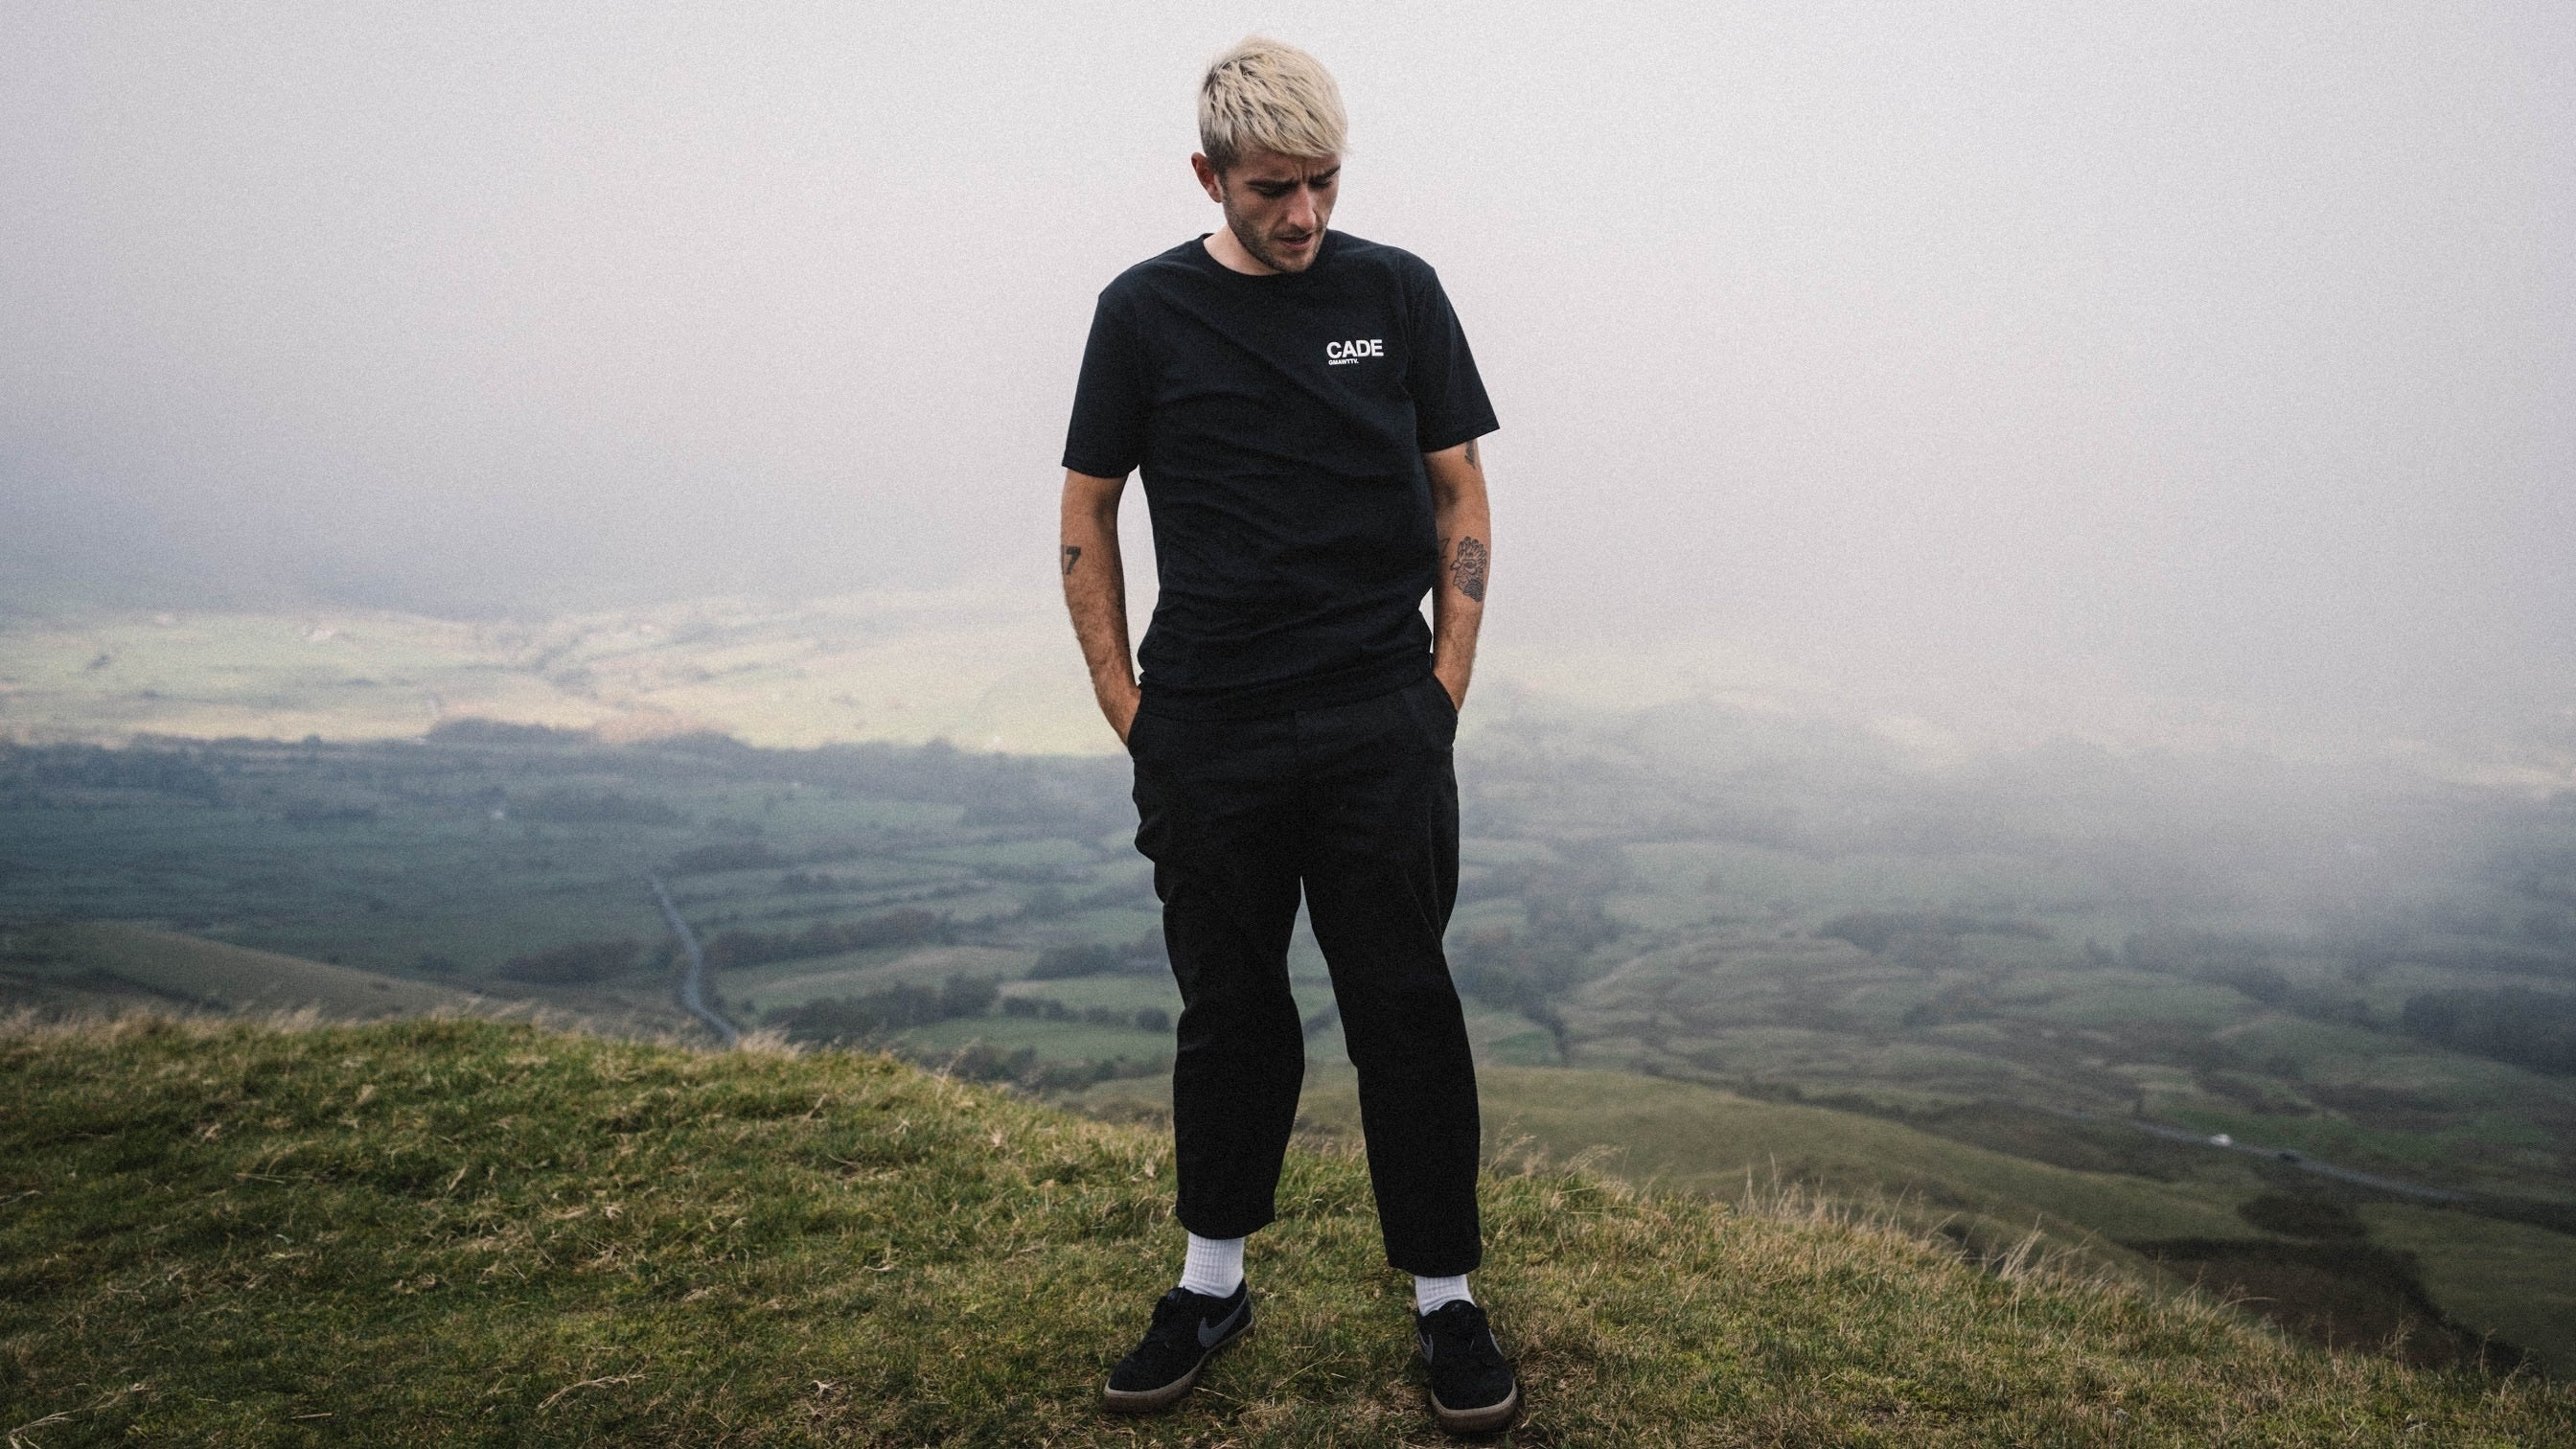 Francis Cade stood on a hill in the PEAK district looking into the distance wearing the new CADE t-shirt